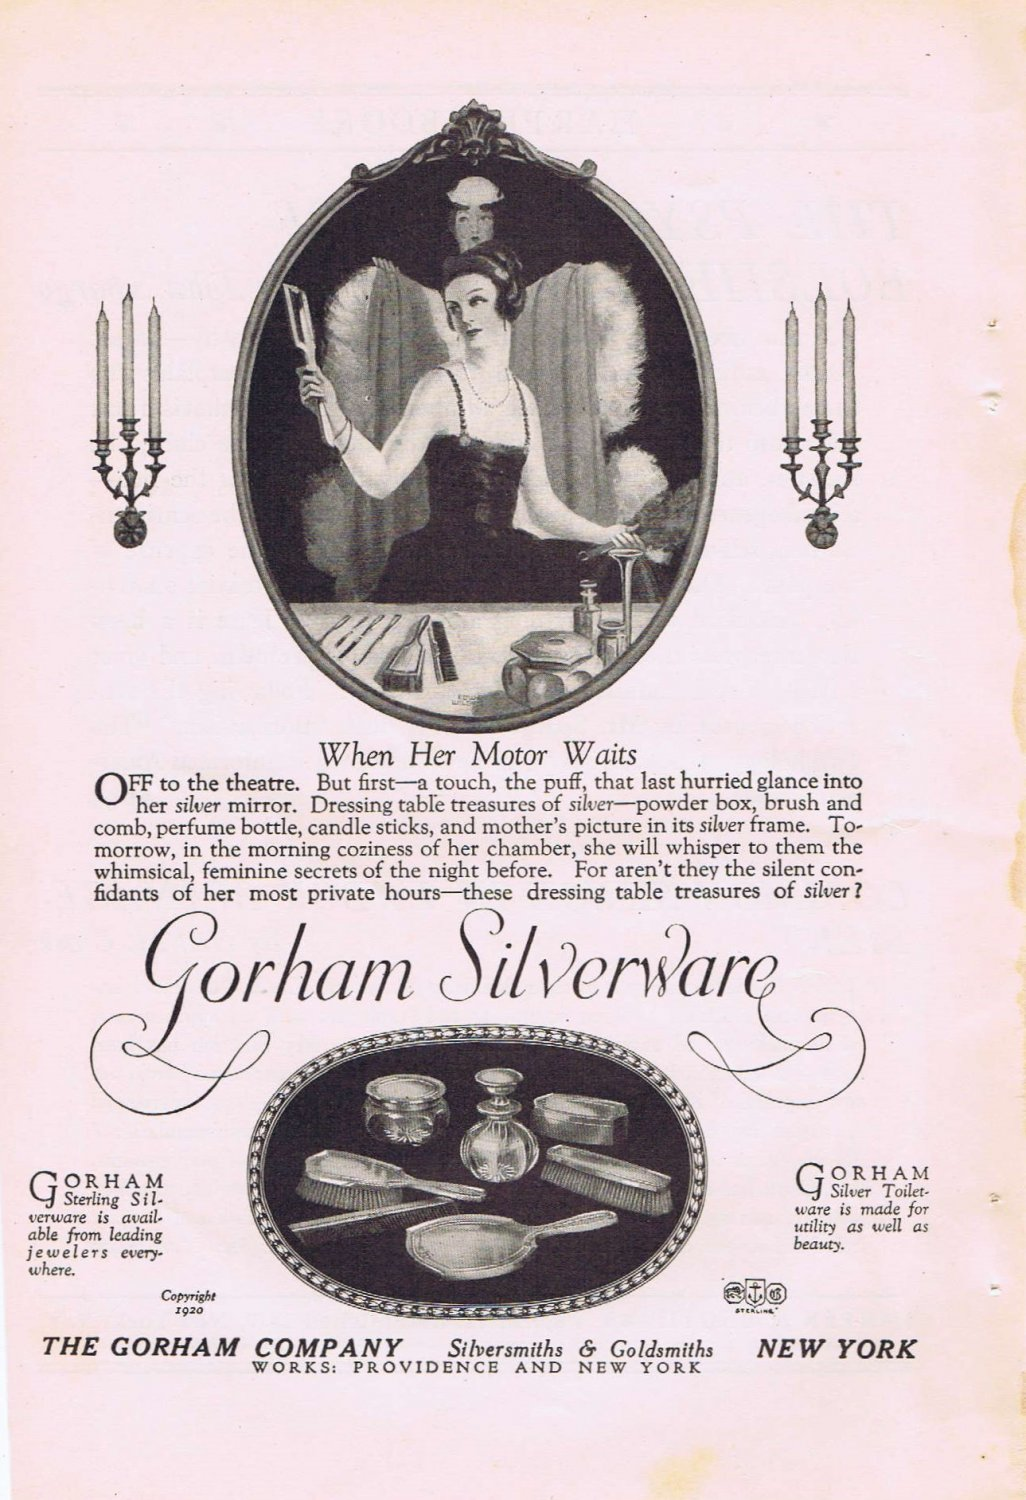 Gorham Silverware 1920 Original Vintage Ad Silversmiths and Goldsmiths